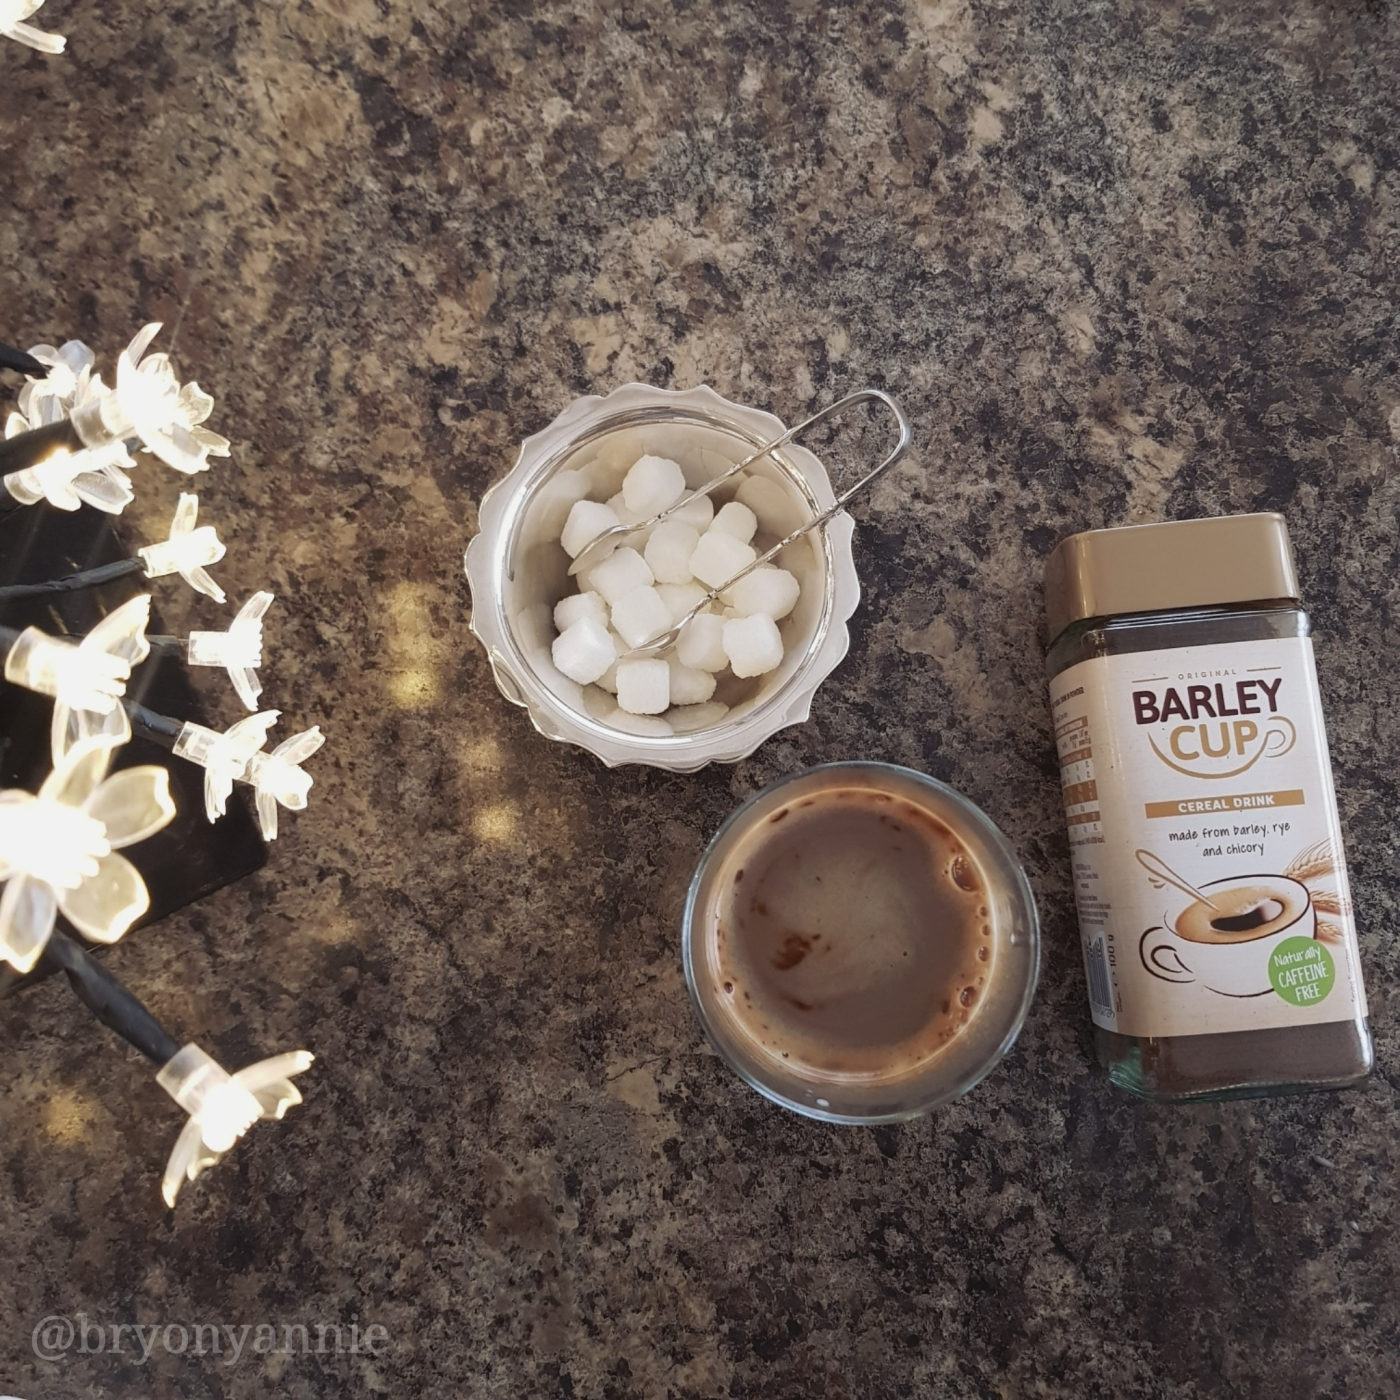 BarleyCup - the caffeine free drink for you!